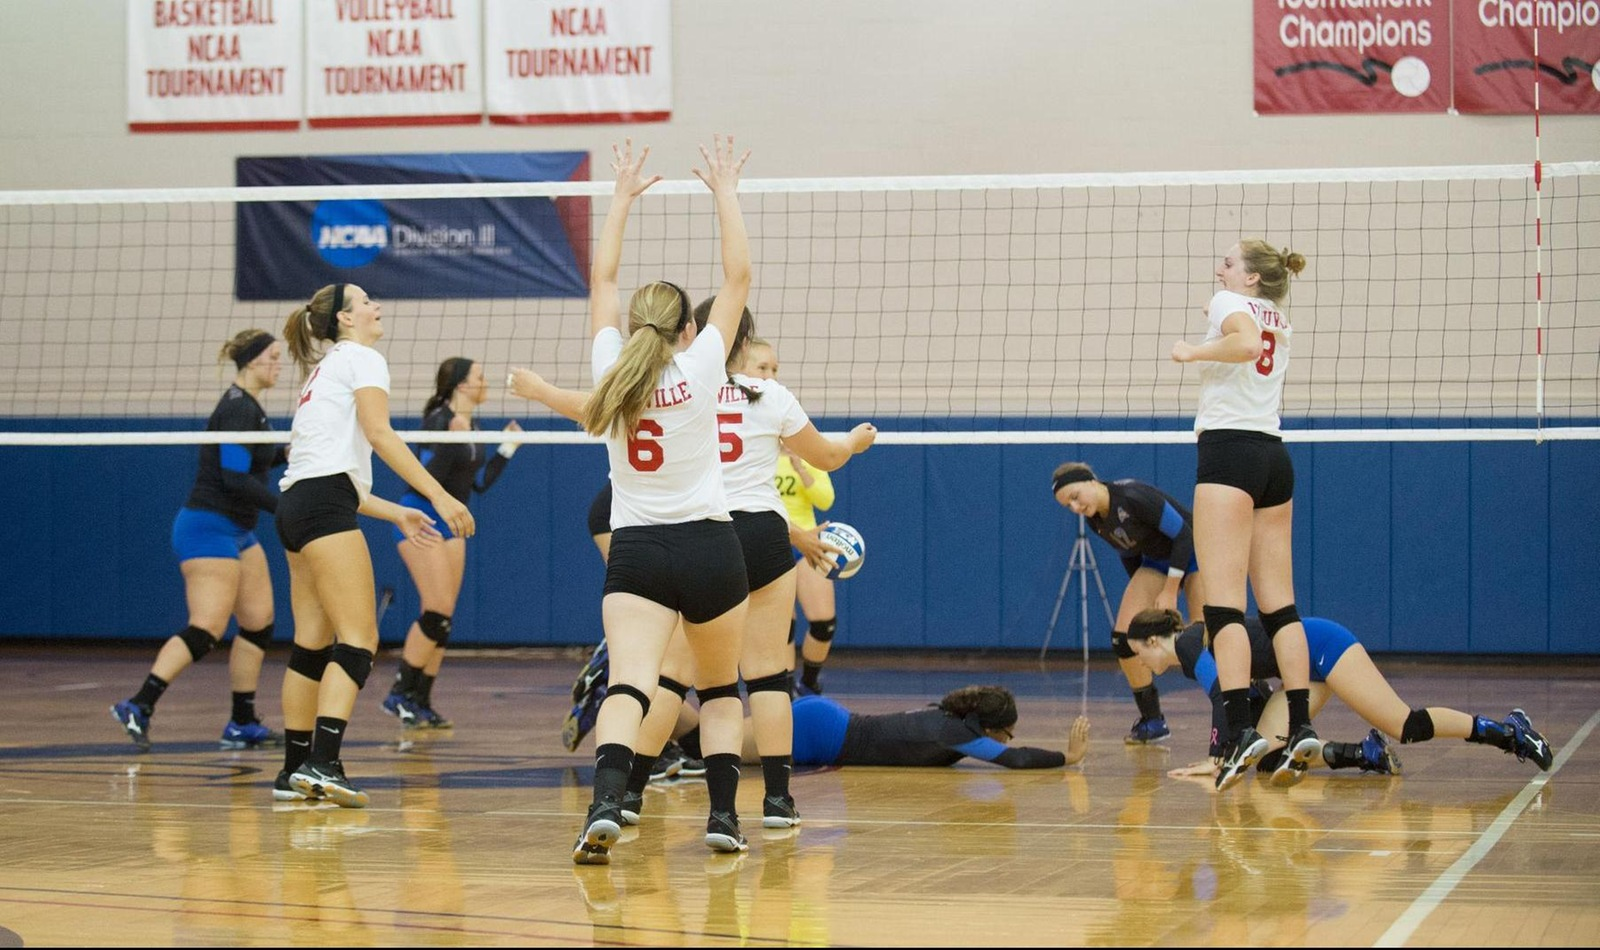 Volleyball Defeats Cazenovia in Home Opener